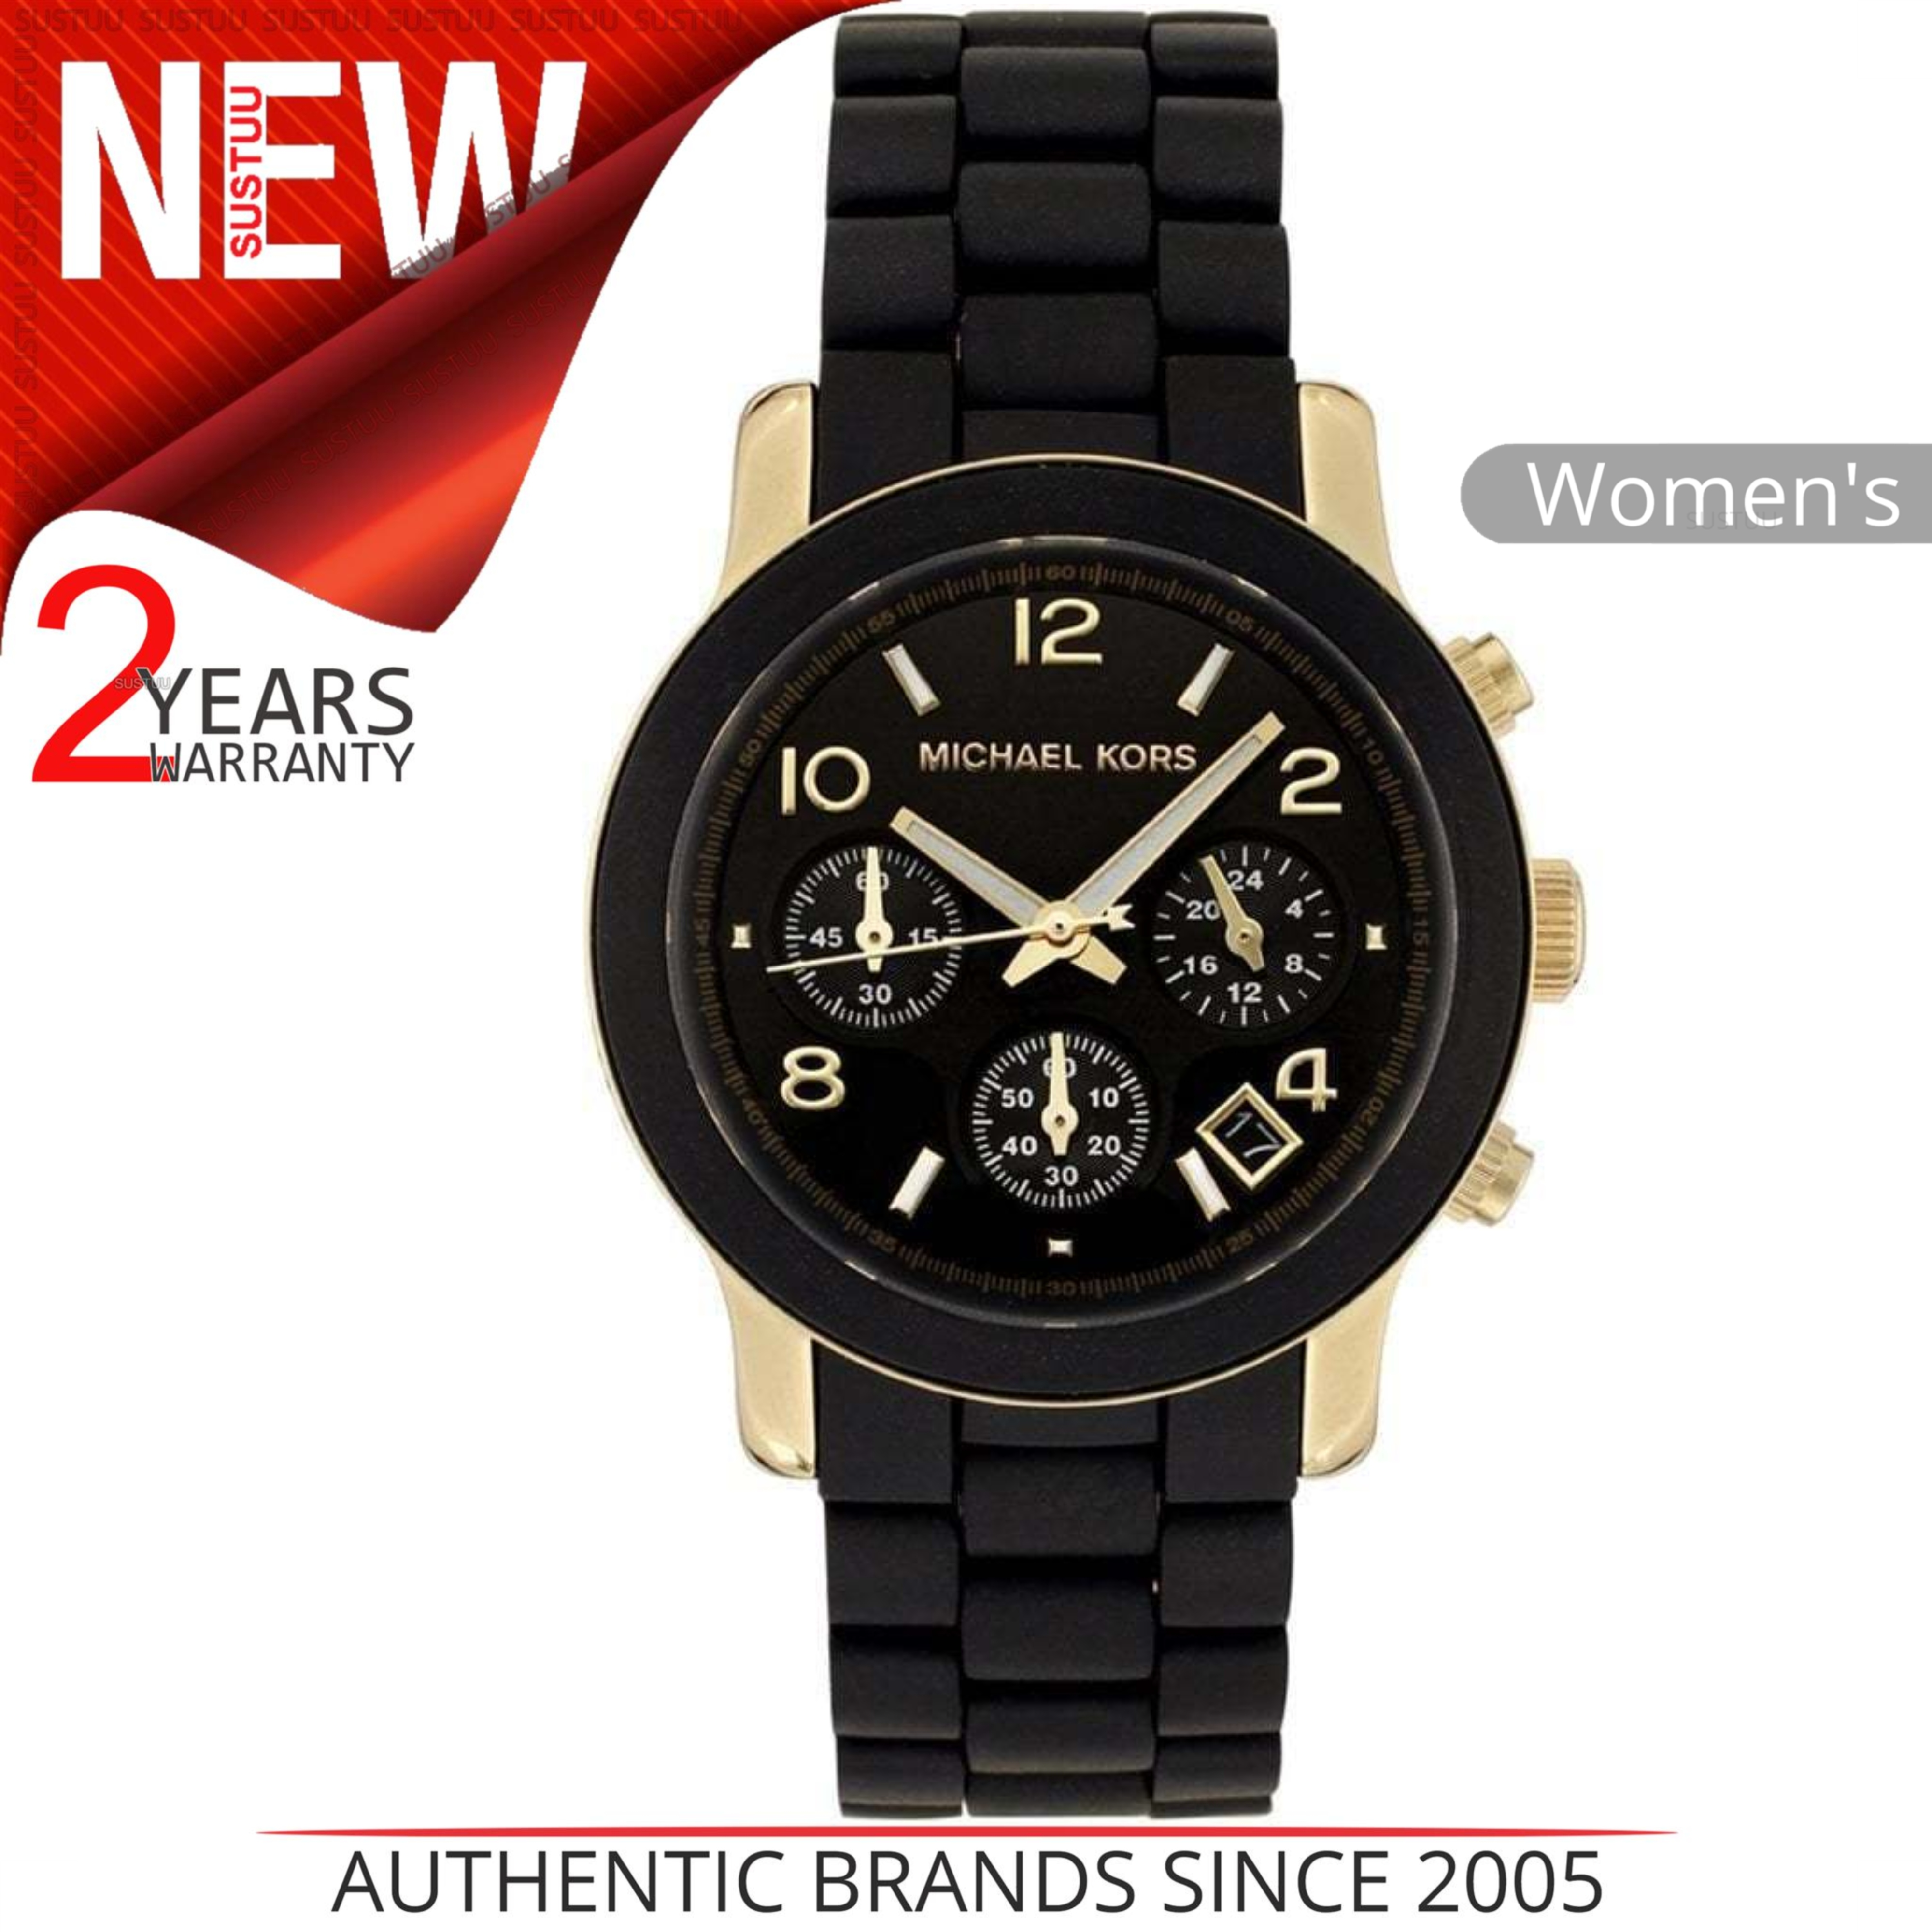 c58fdce1f661 Details about Michael Kors Runway Women s Watch MK5191│Chronograph Black  Dial│Bracelet Band